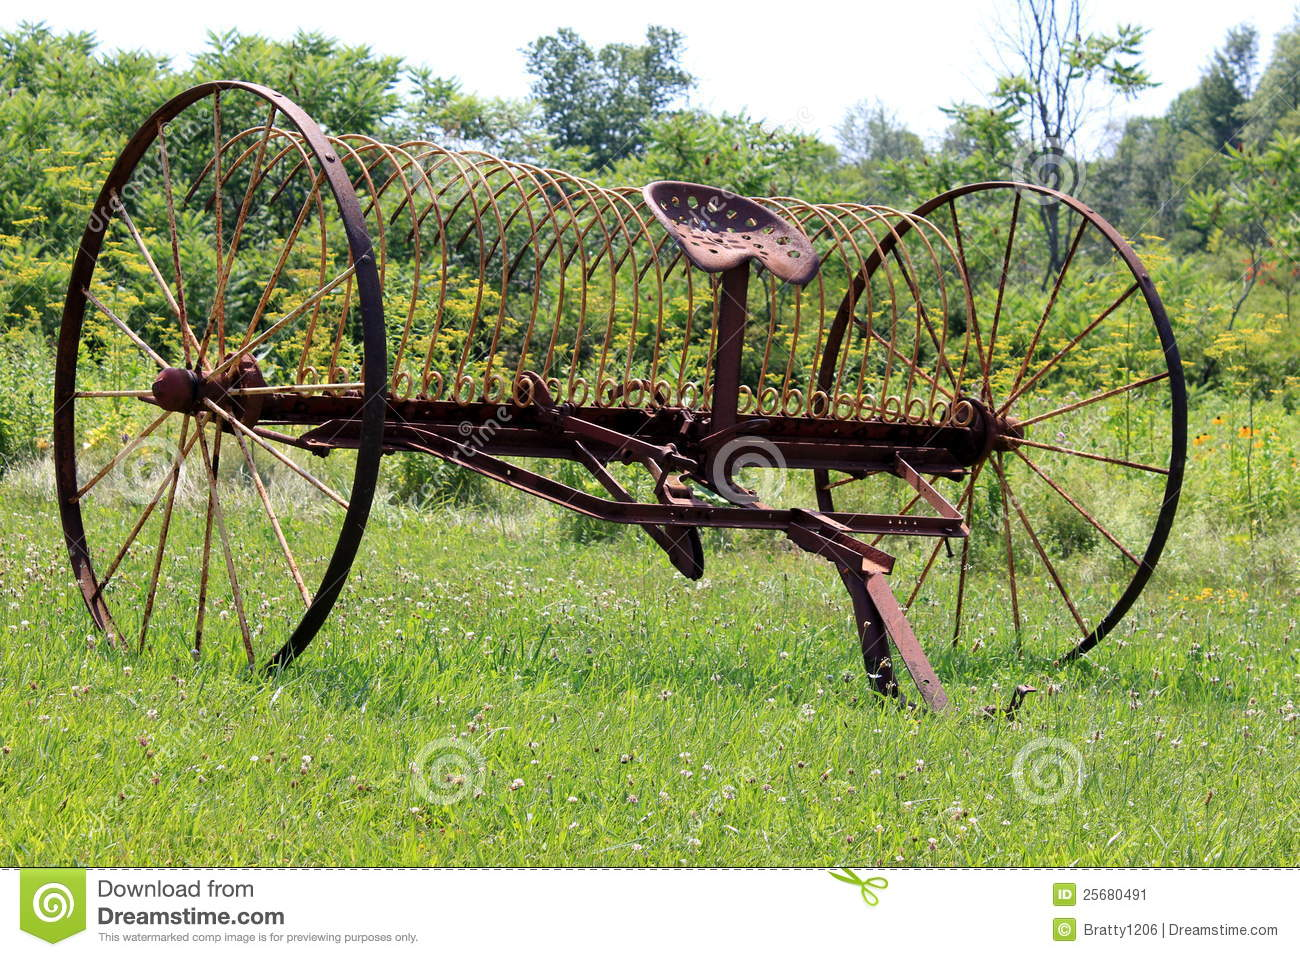 Antique farm equipment stock image. Image of blades ...